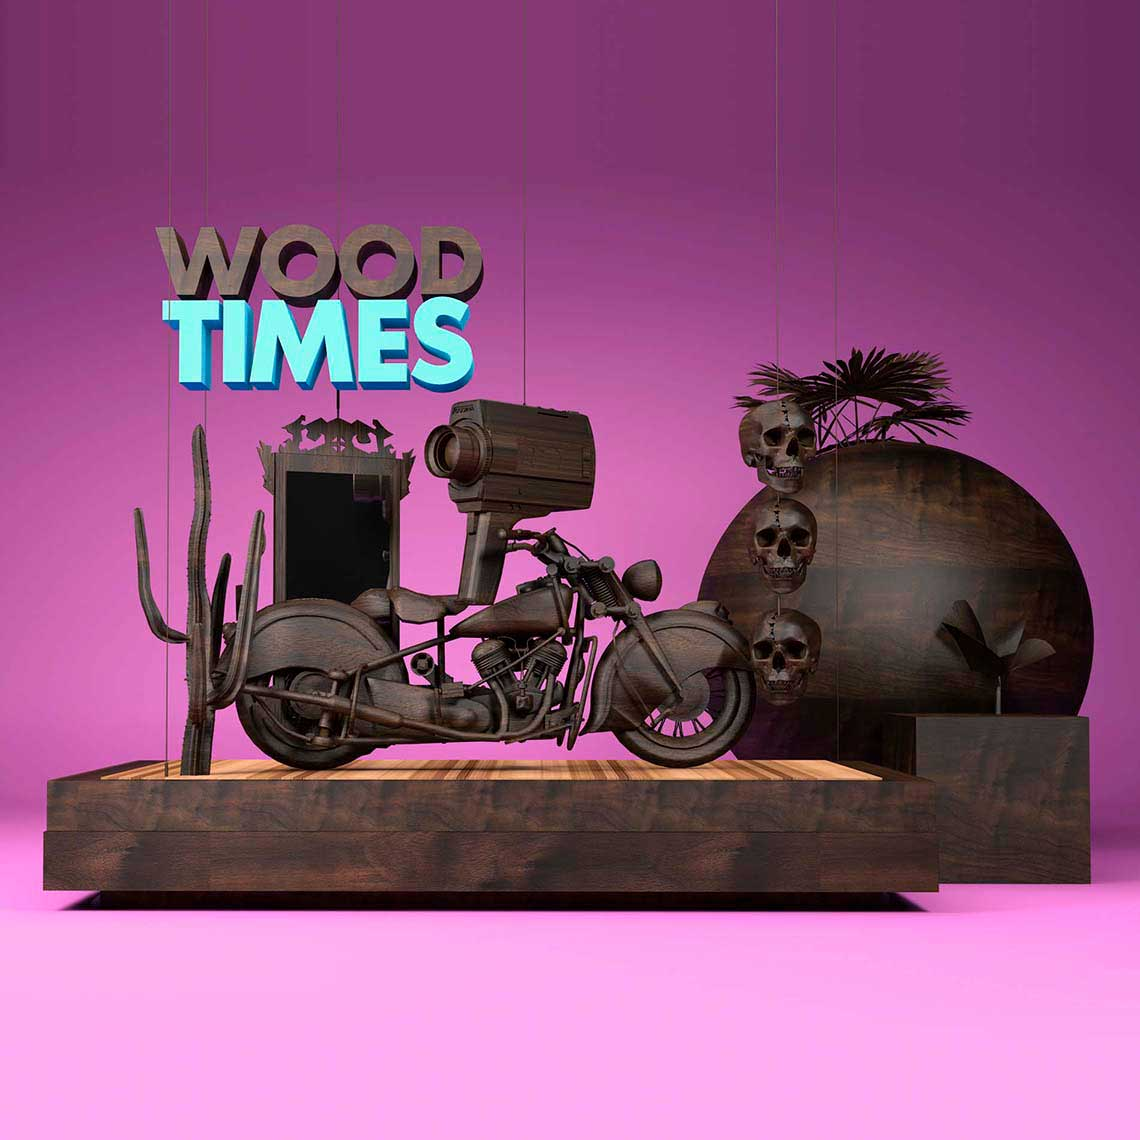 WOOD_TIMES_PINK